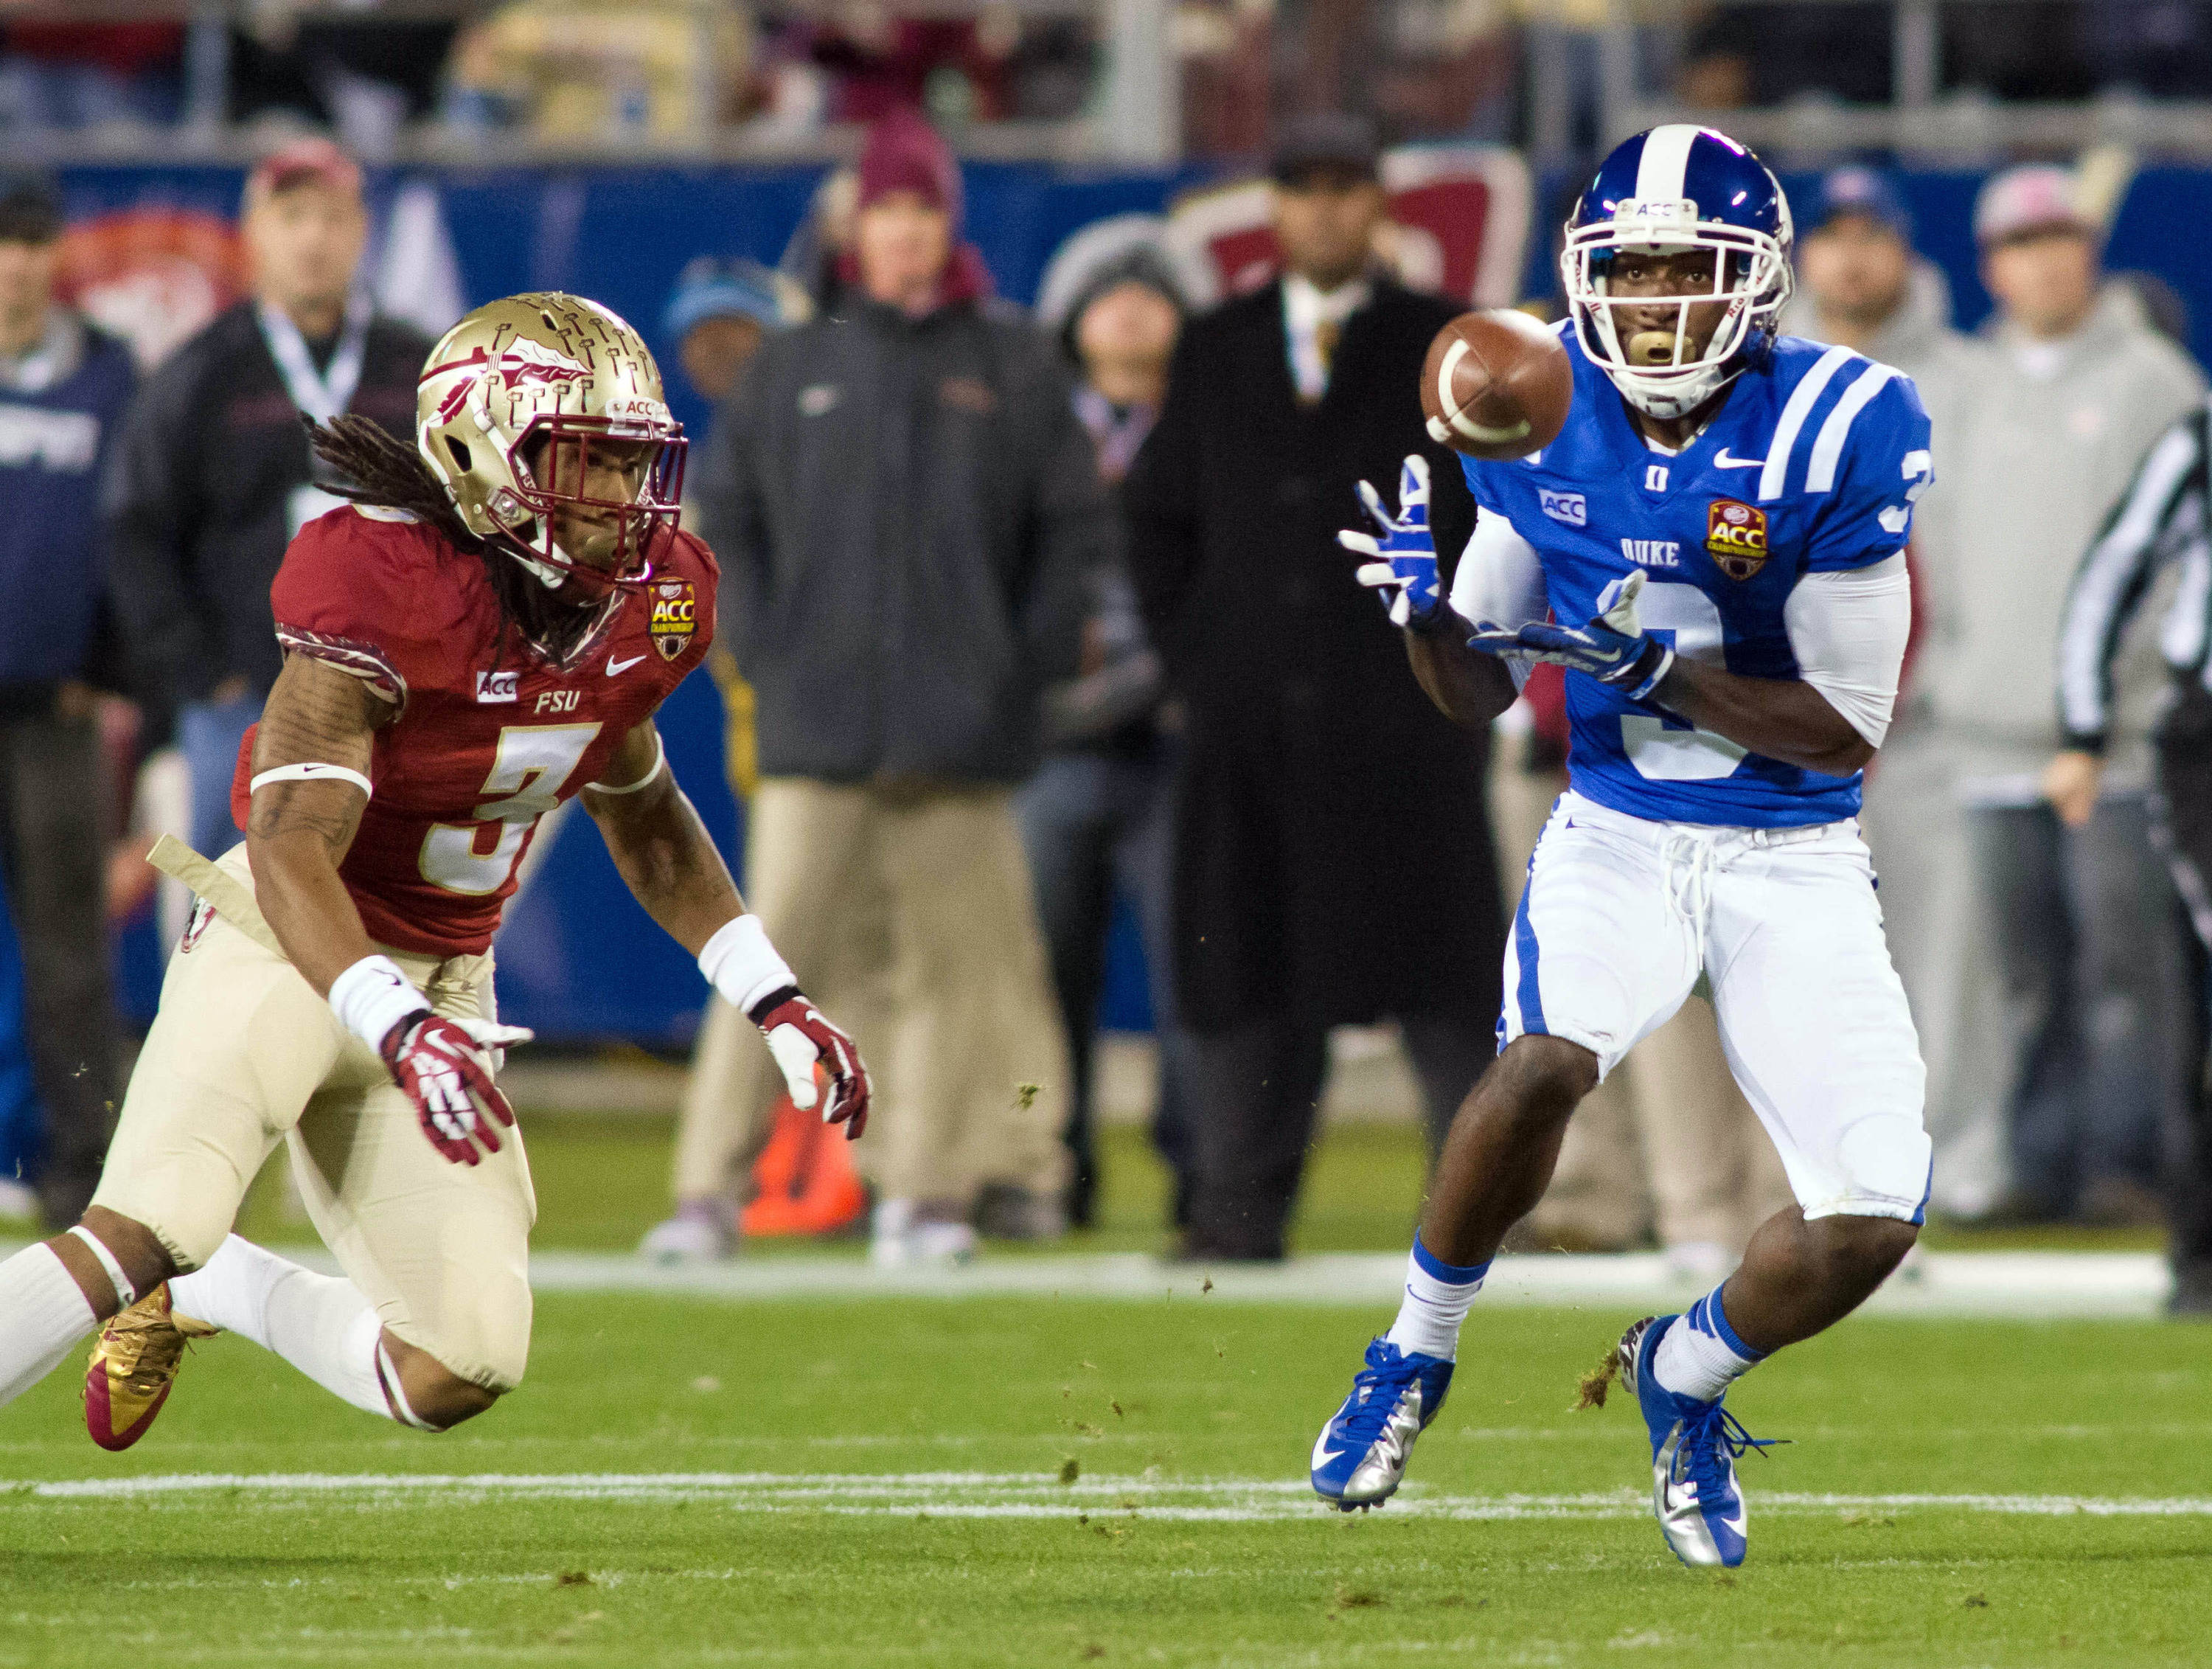 Dec 7, 2013; Charlotte, NC, USA; Duke Blue Devils wide receiver Jamison Crowder (3) catches a pass during the first quarter against the Florida State Seminoles at Bank of America Stadium. Mandatory Credit: Jeremy Brevard-USA TODAY Sports